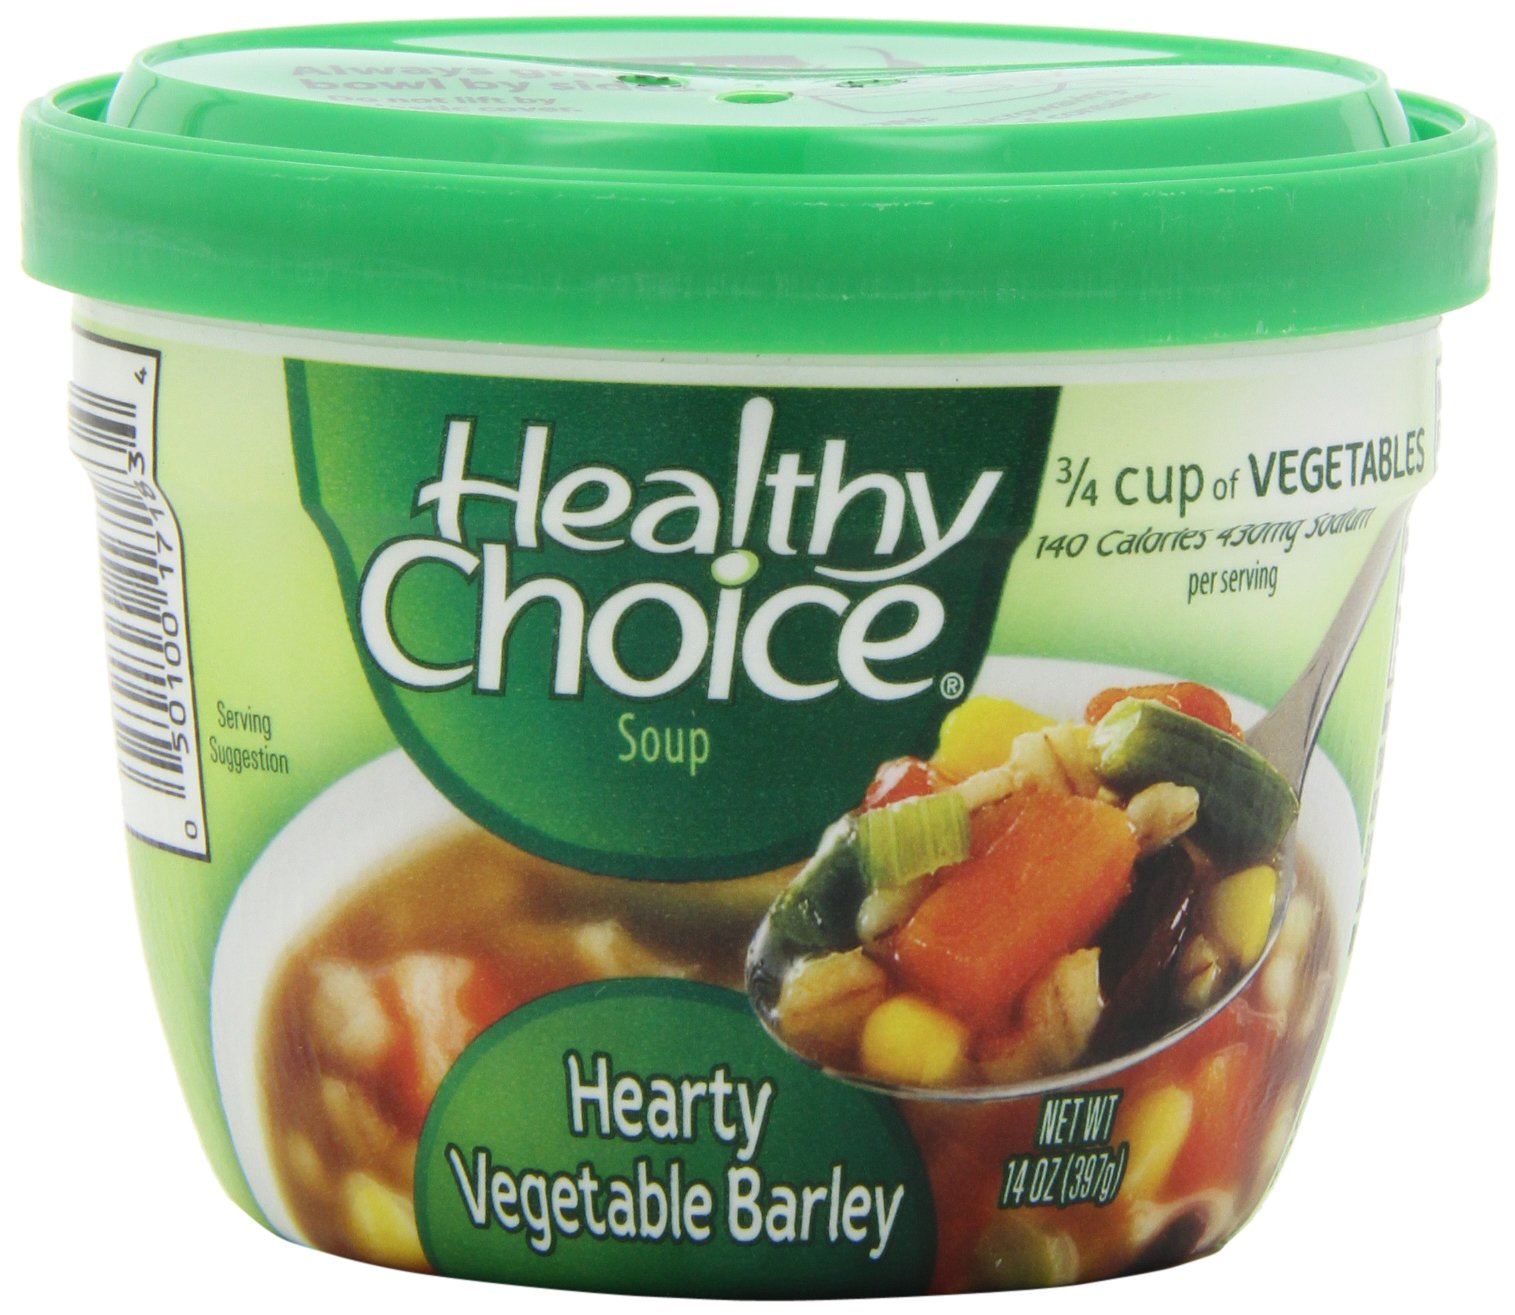 Healthy Choice Hearty Vegetable Barley Soup, 14-Ounce Microwavable Cups (Pack of 12)